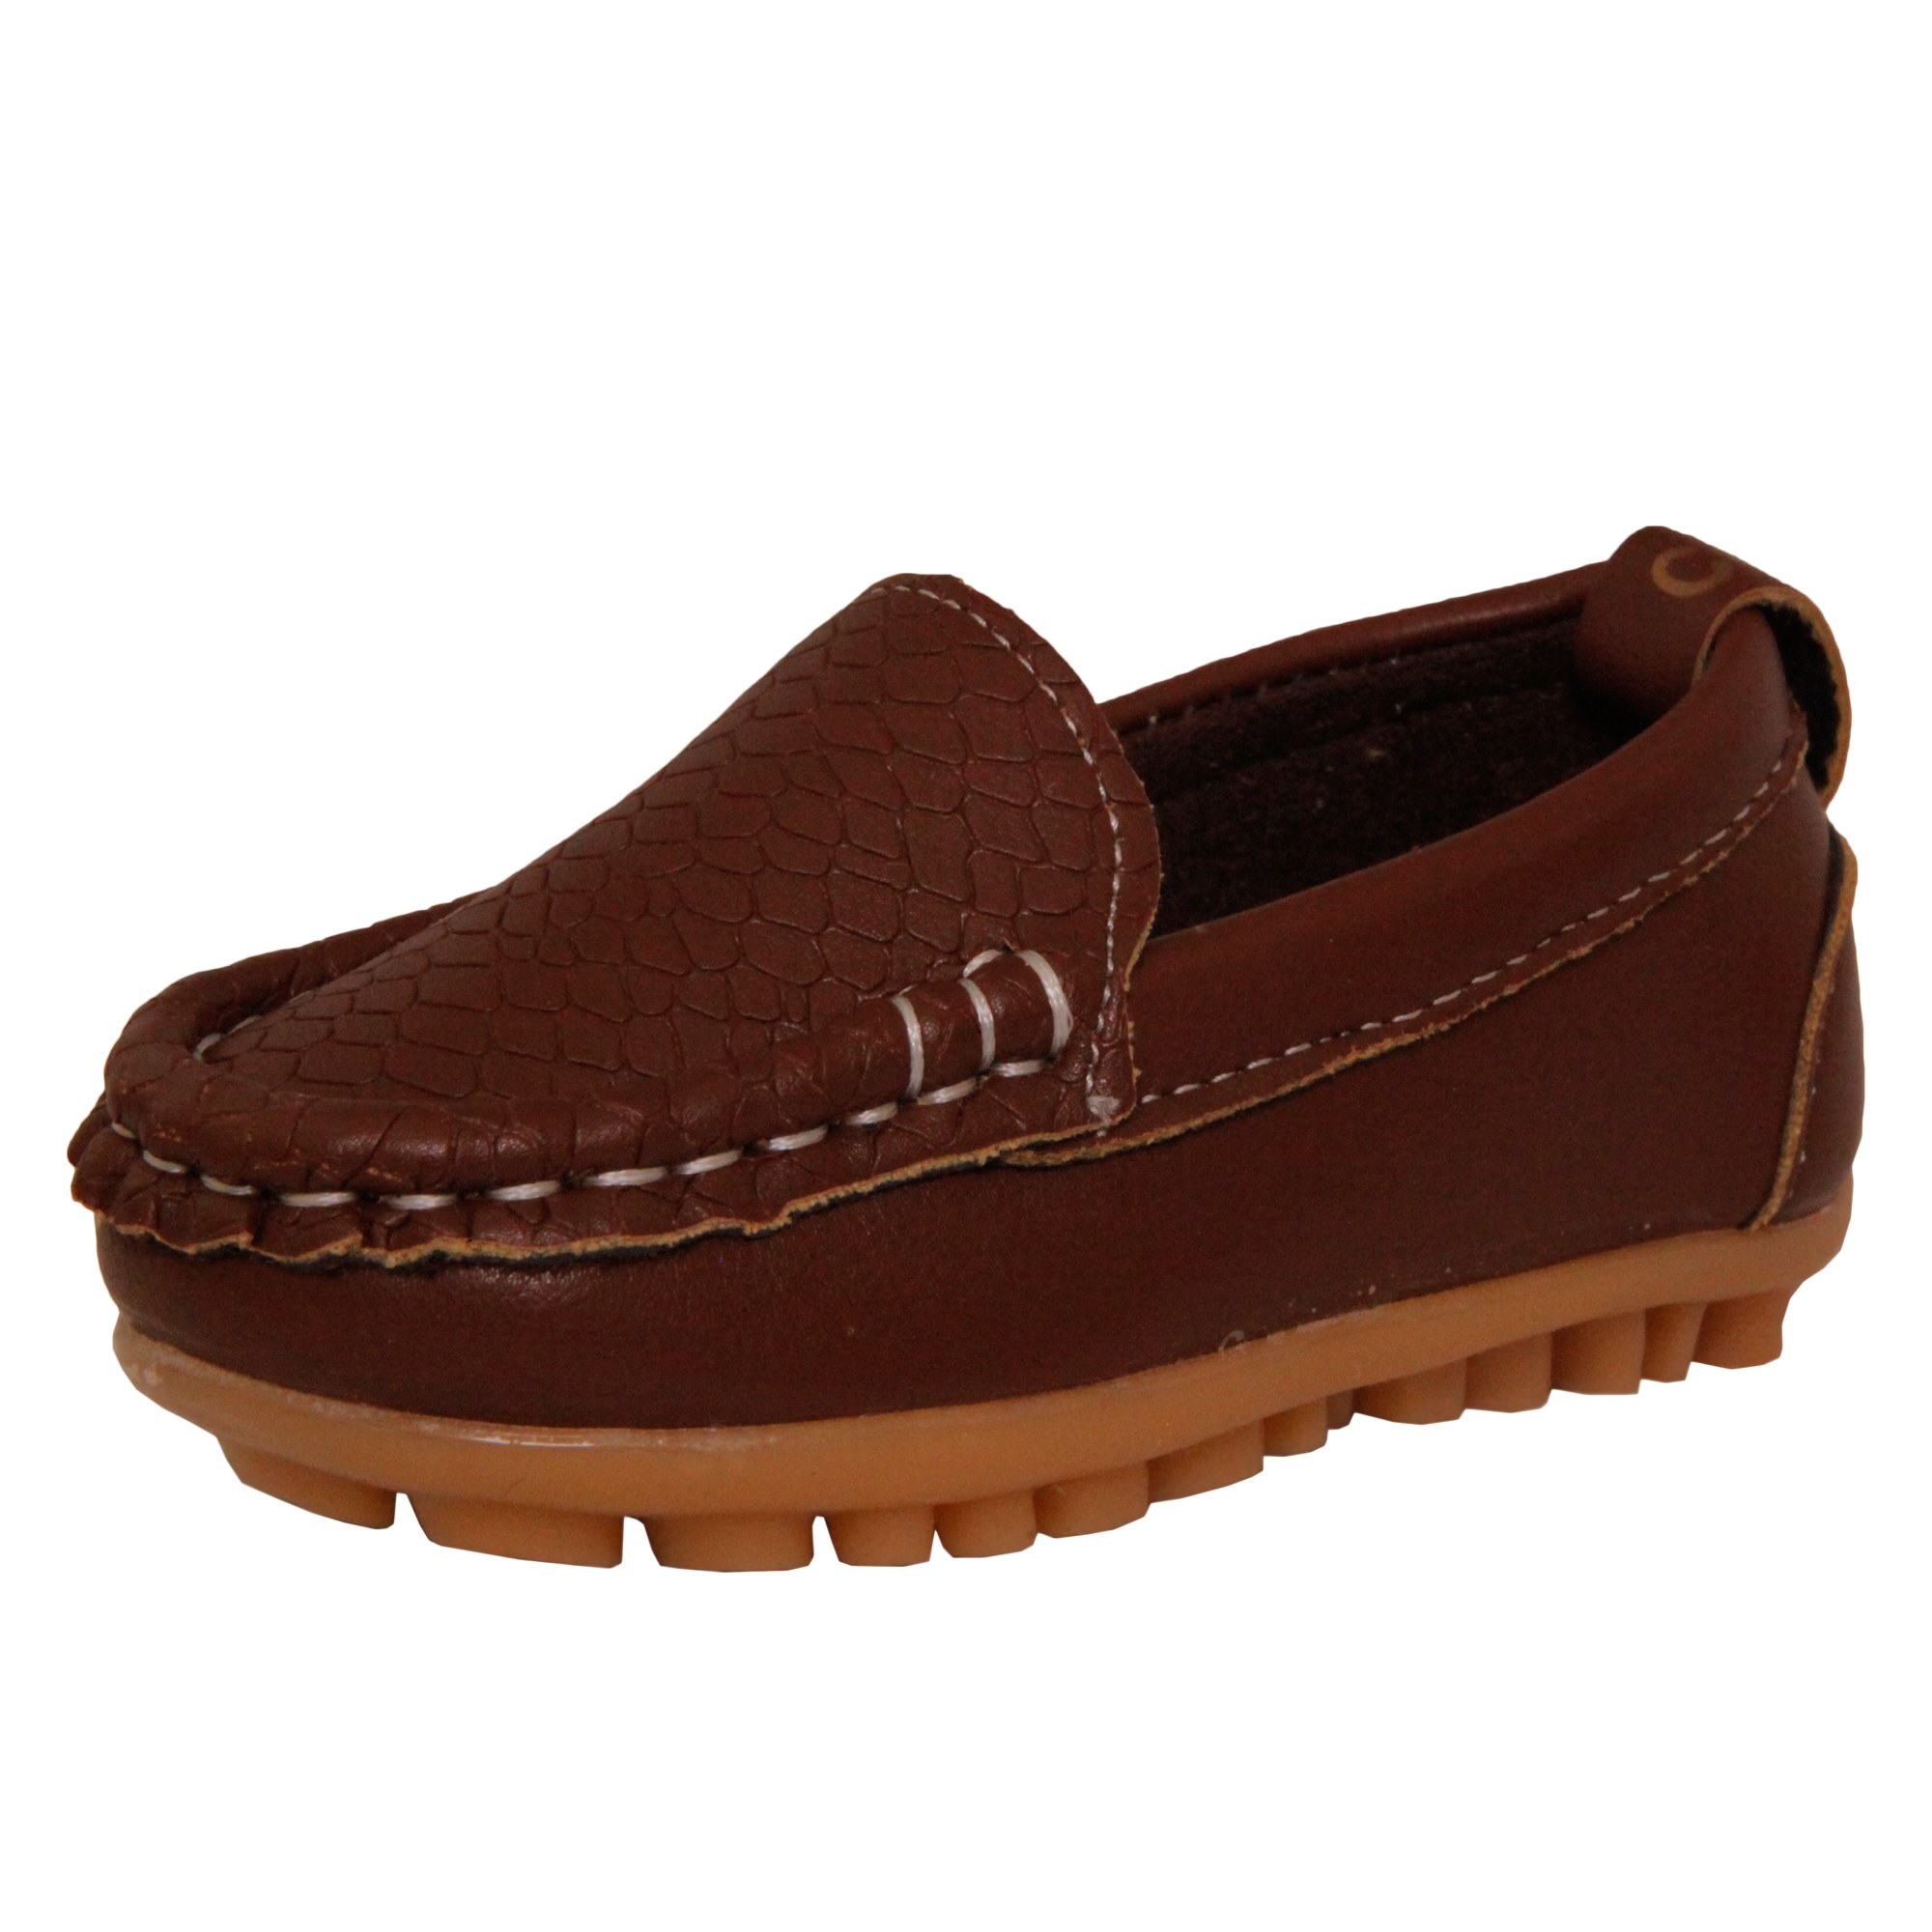 Kids Conda Boys & Girls Brown Loafers Water Resistent Slip On Split Leather Boys & Girls Oxfords - Deck Shoes / Sneakers Size 3 M US Little Kid